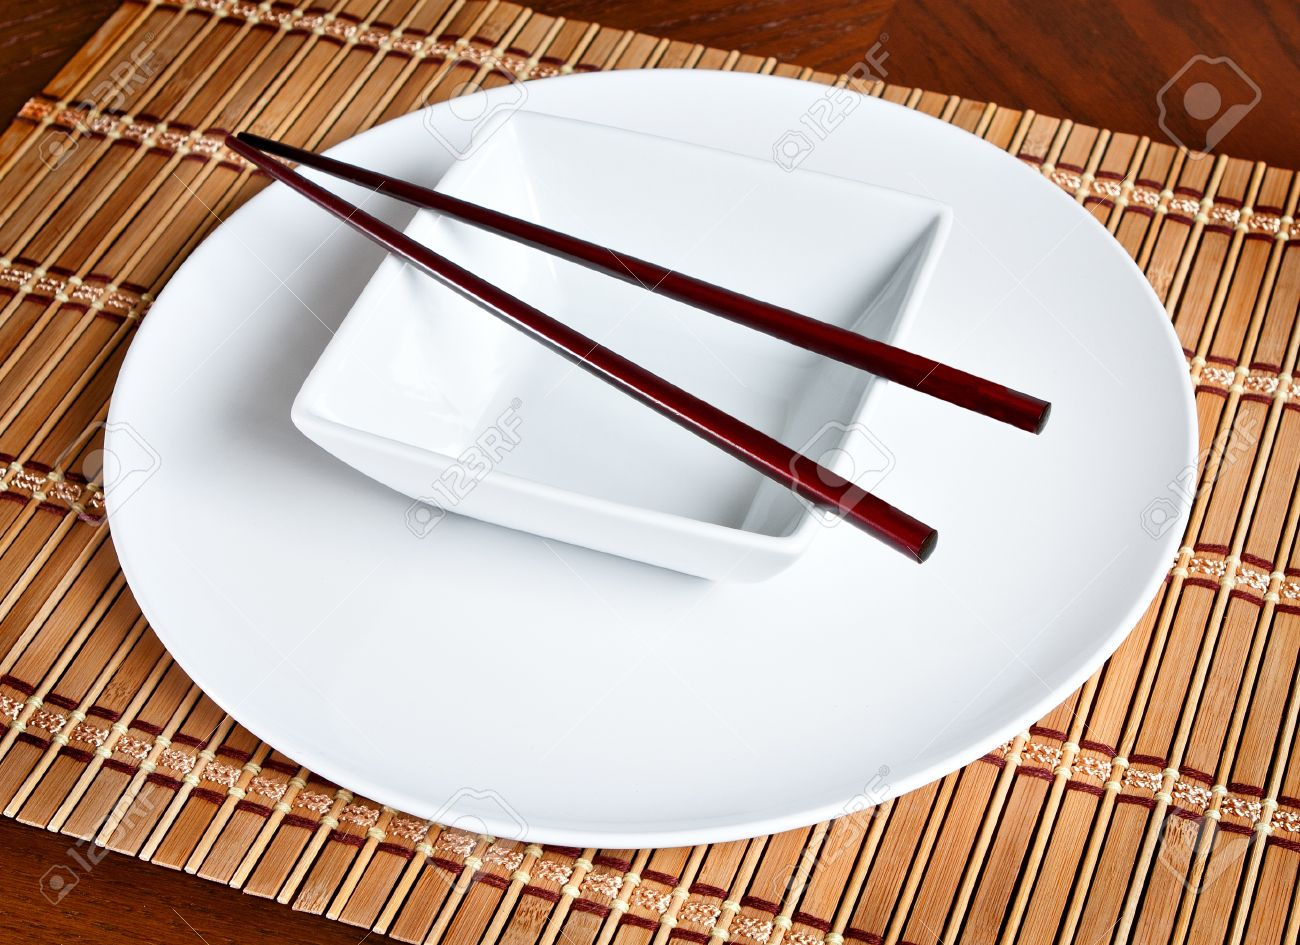 A modern Asian table setting Stock Photo - 12531610 & A Modern Asian Table Setting Stock Photo Picture And Royalty Free ...